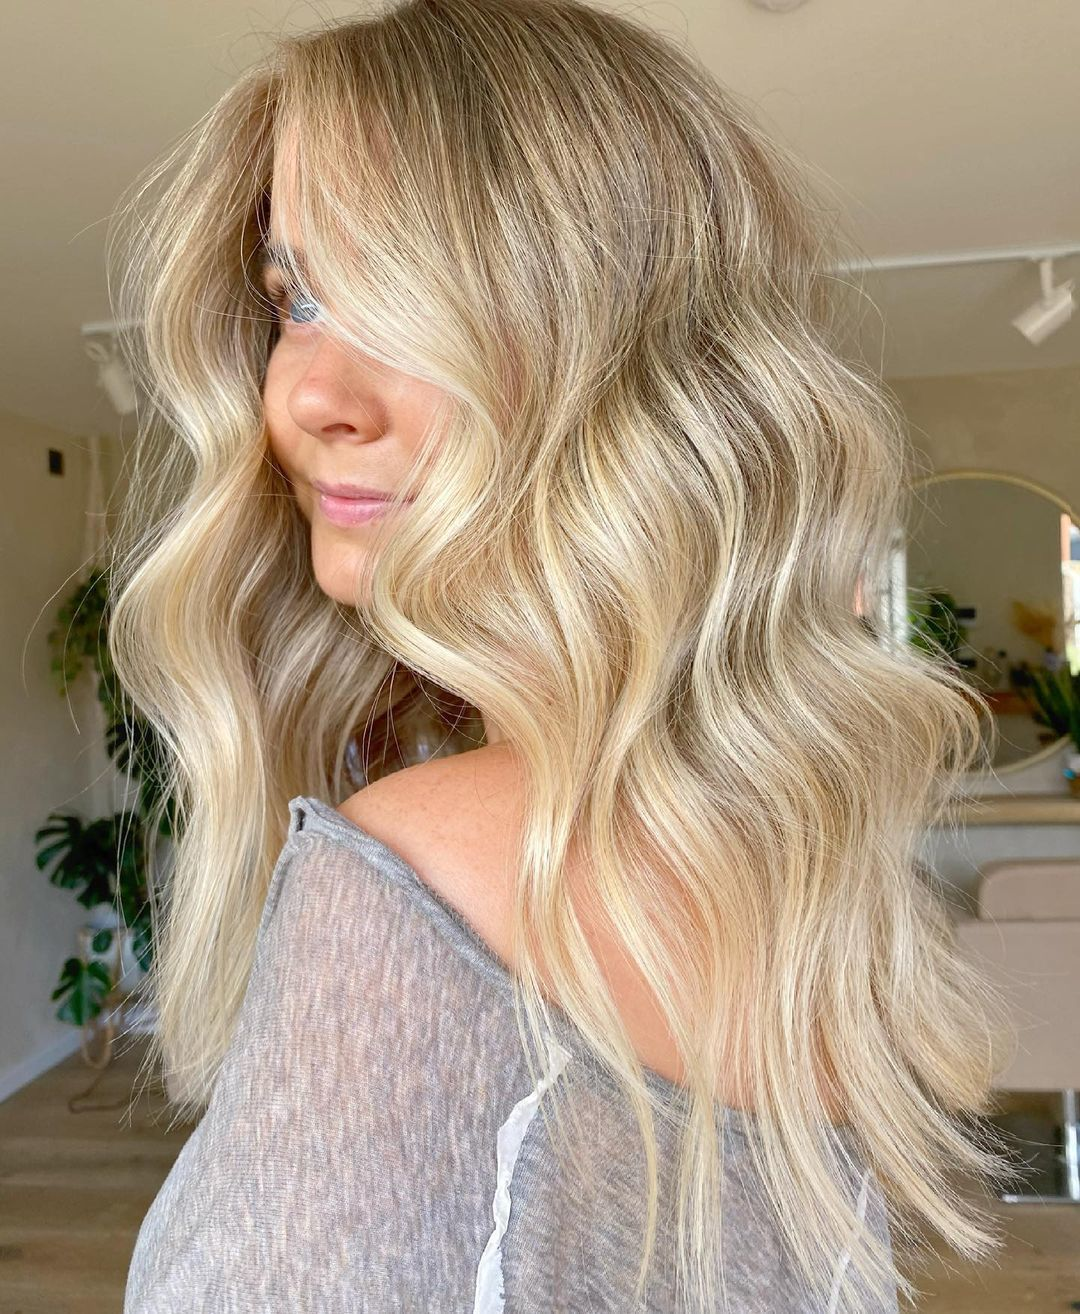 50 Awesome Long Layered Hair Ideas For 2021 images 3